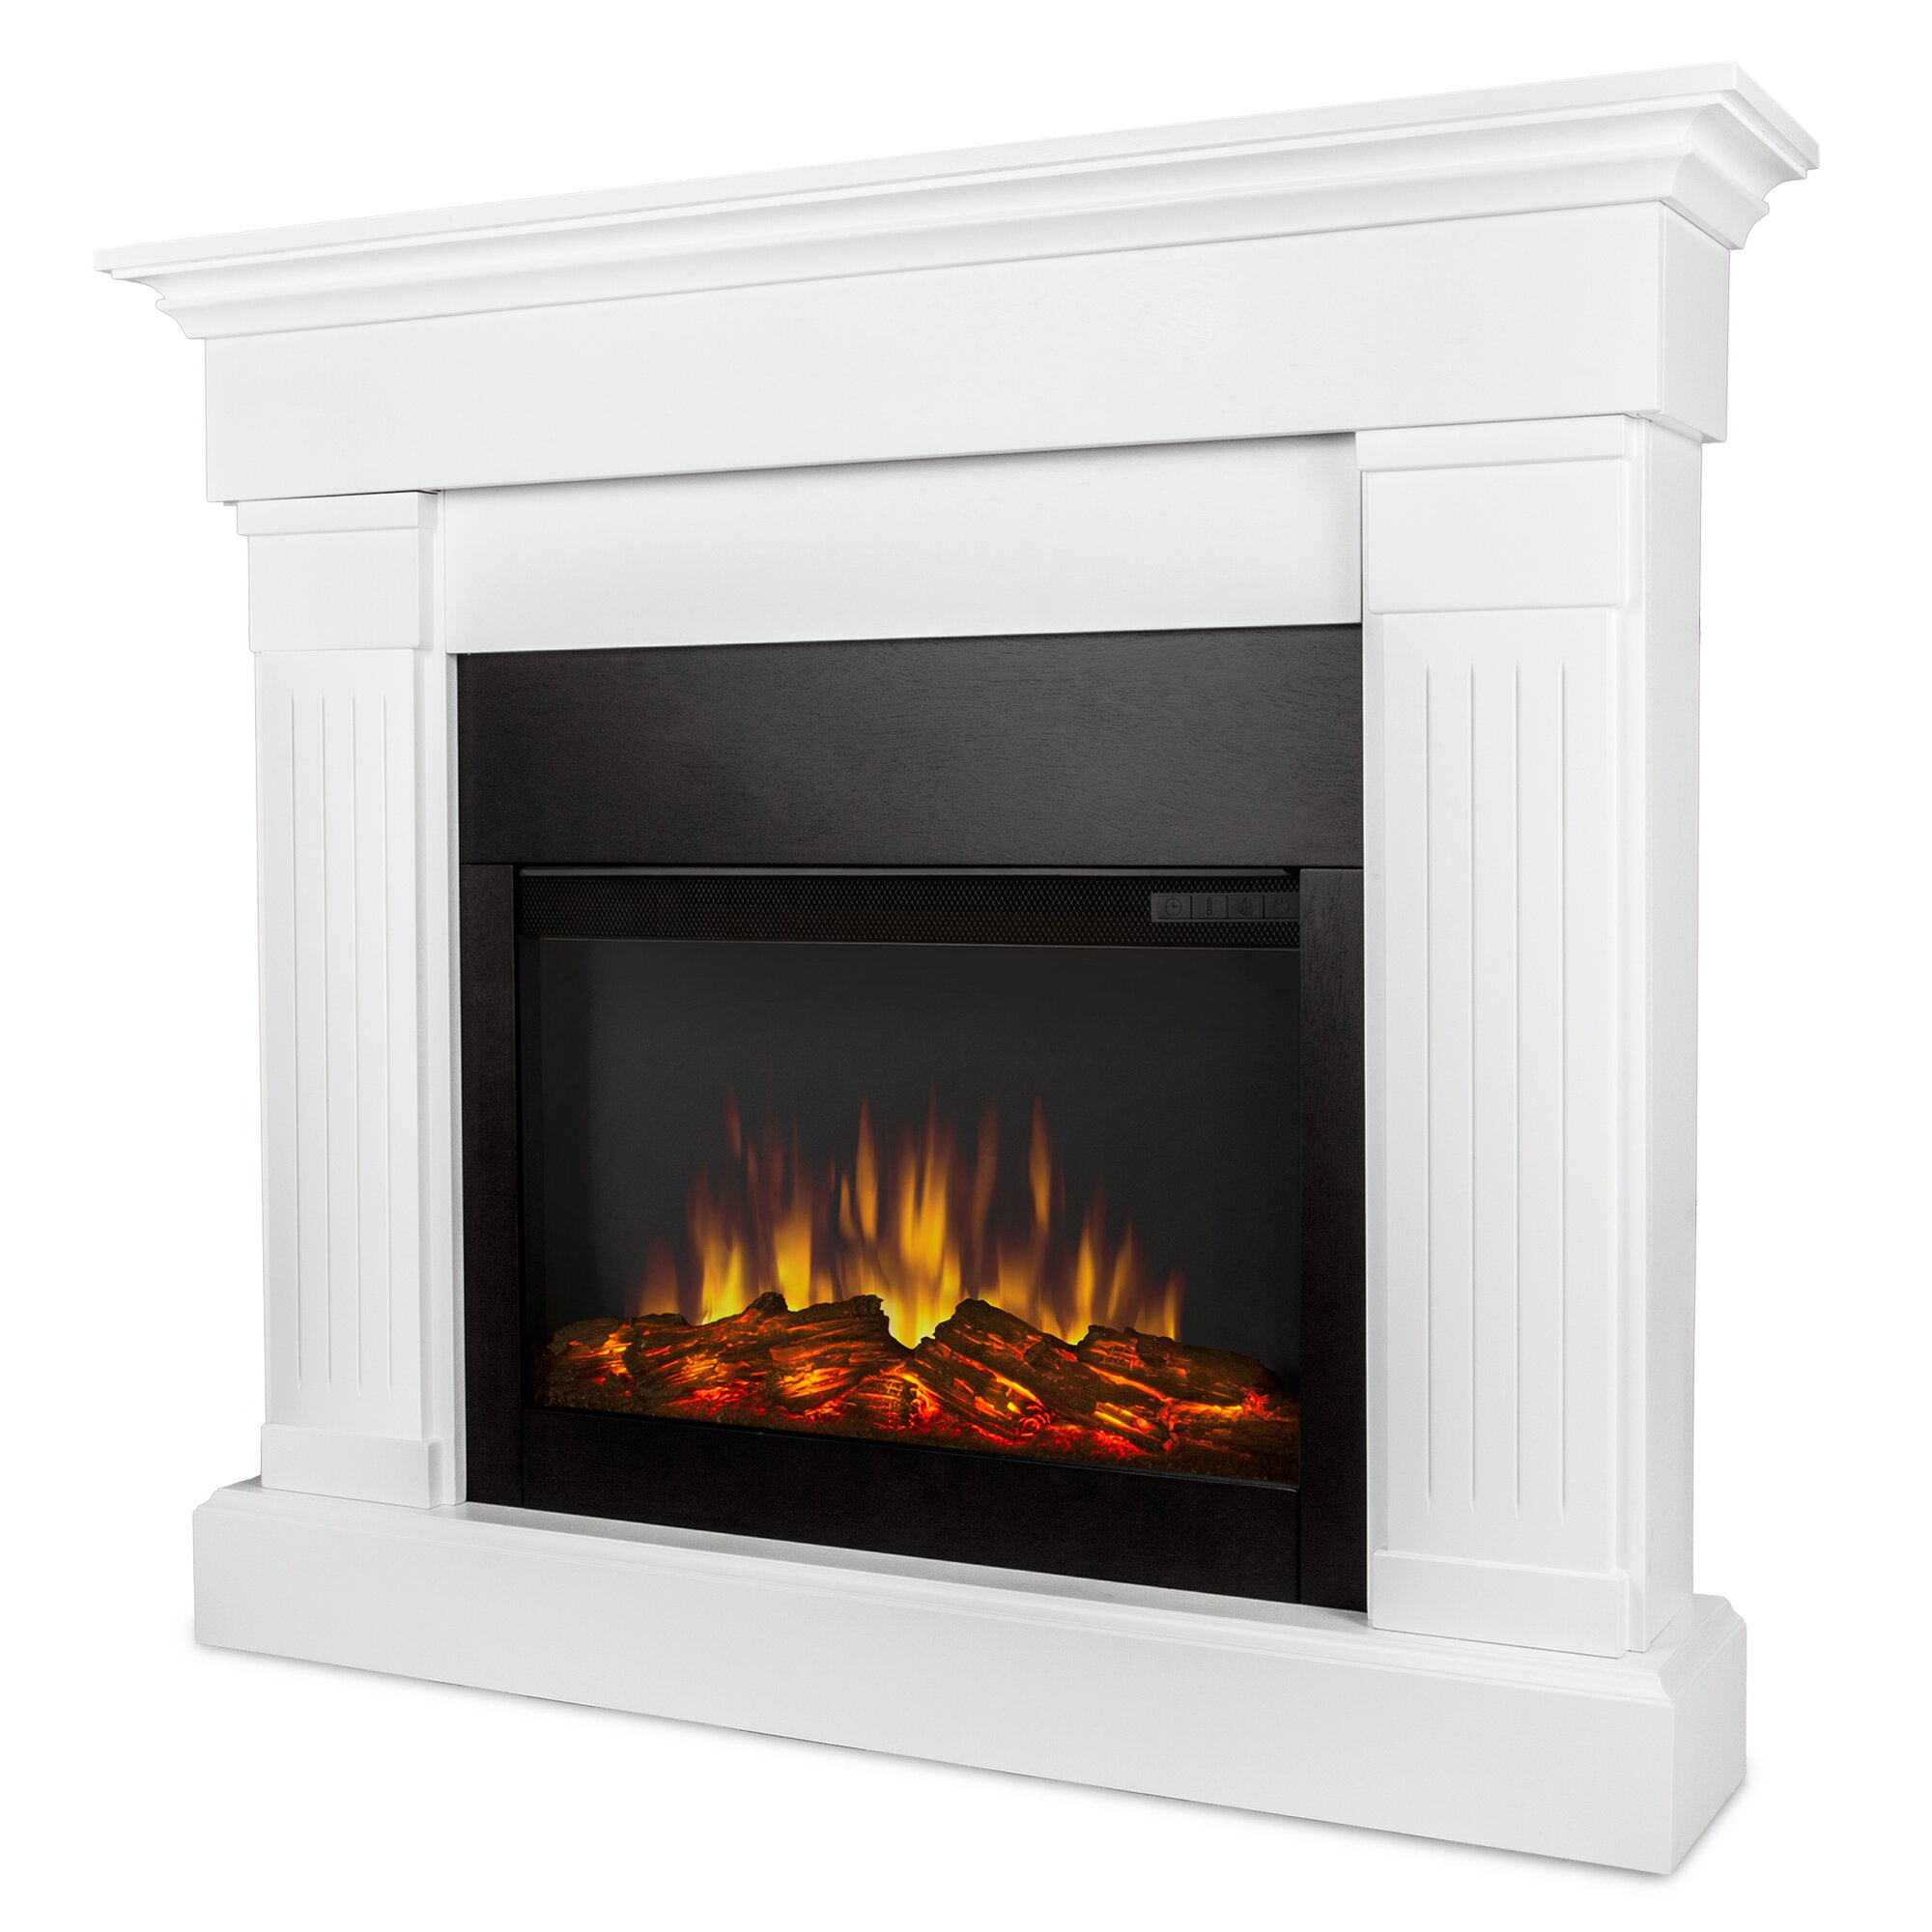 Real Flame Slim Crawford Wall Mount Electric Fireplace